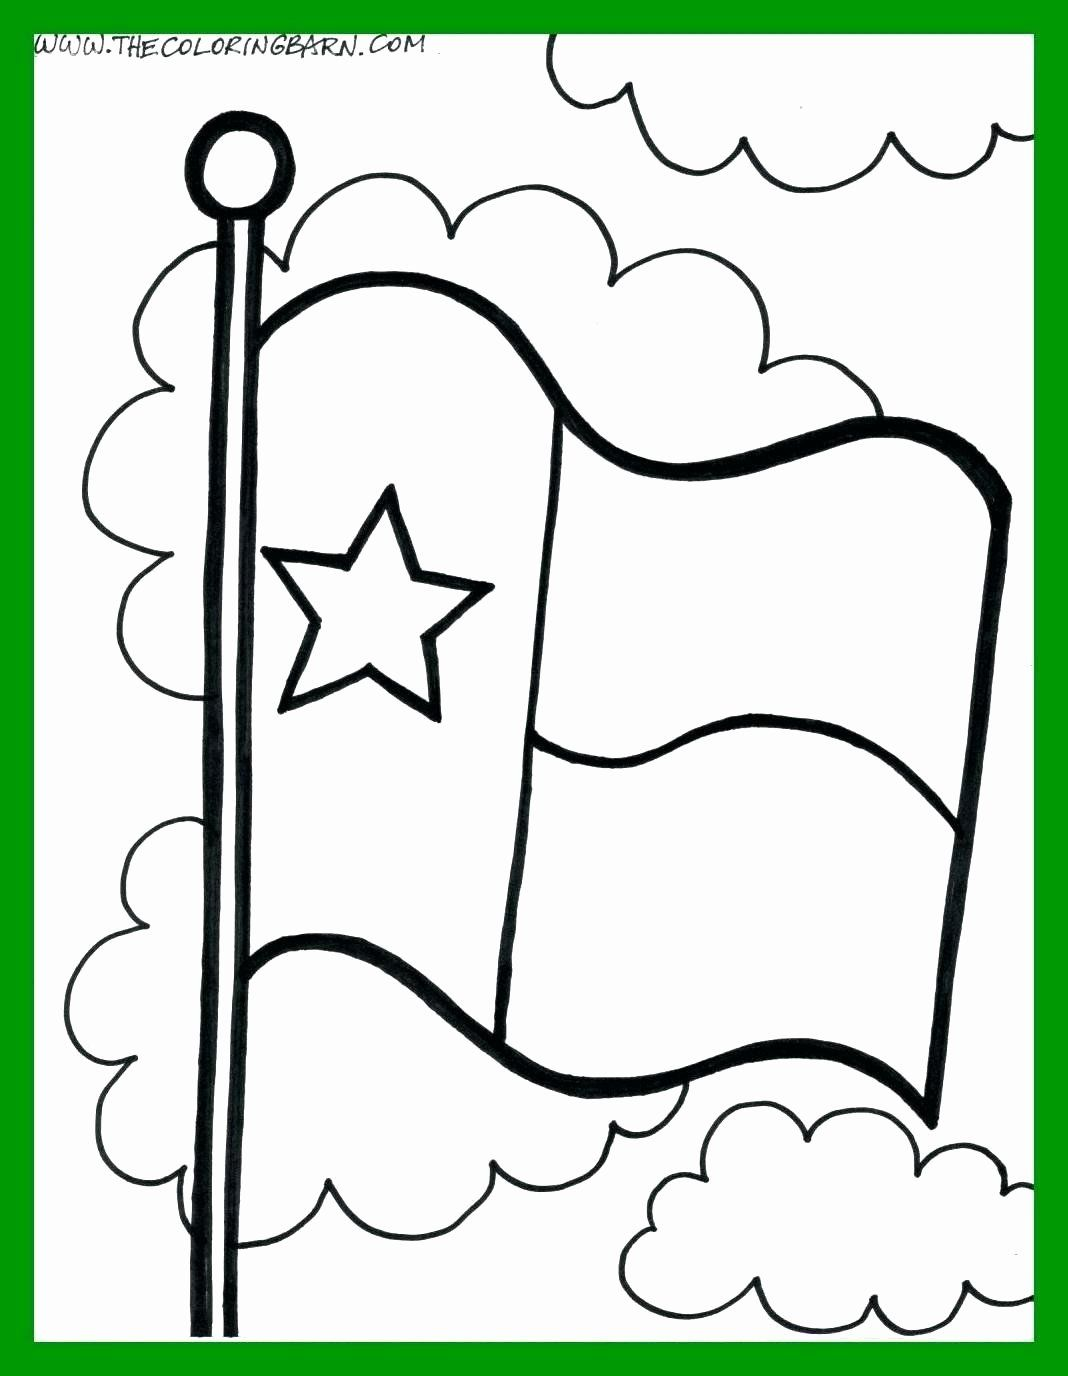 Louisiana State Flag Coloring Page Unique Texas State Symbols